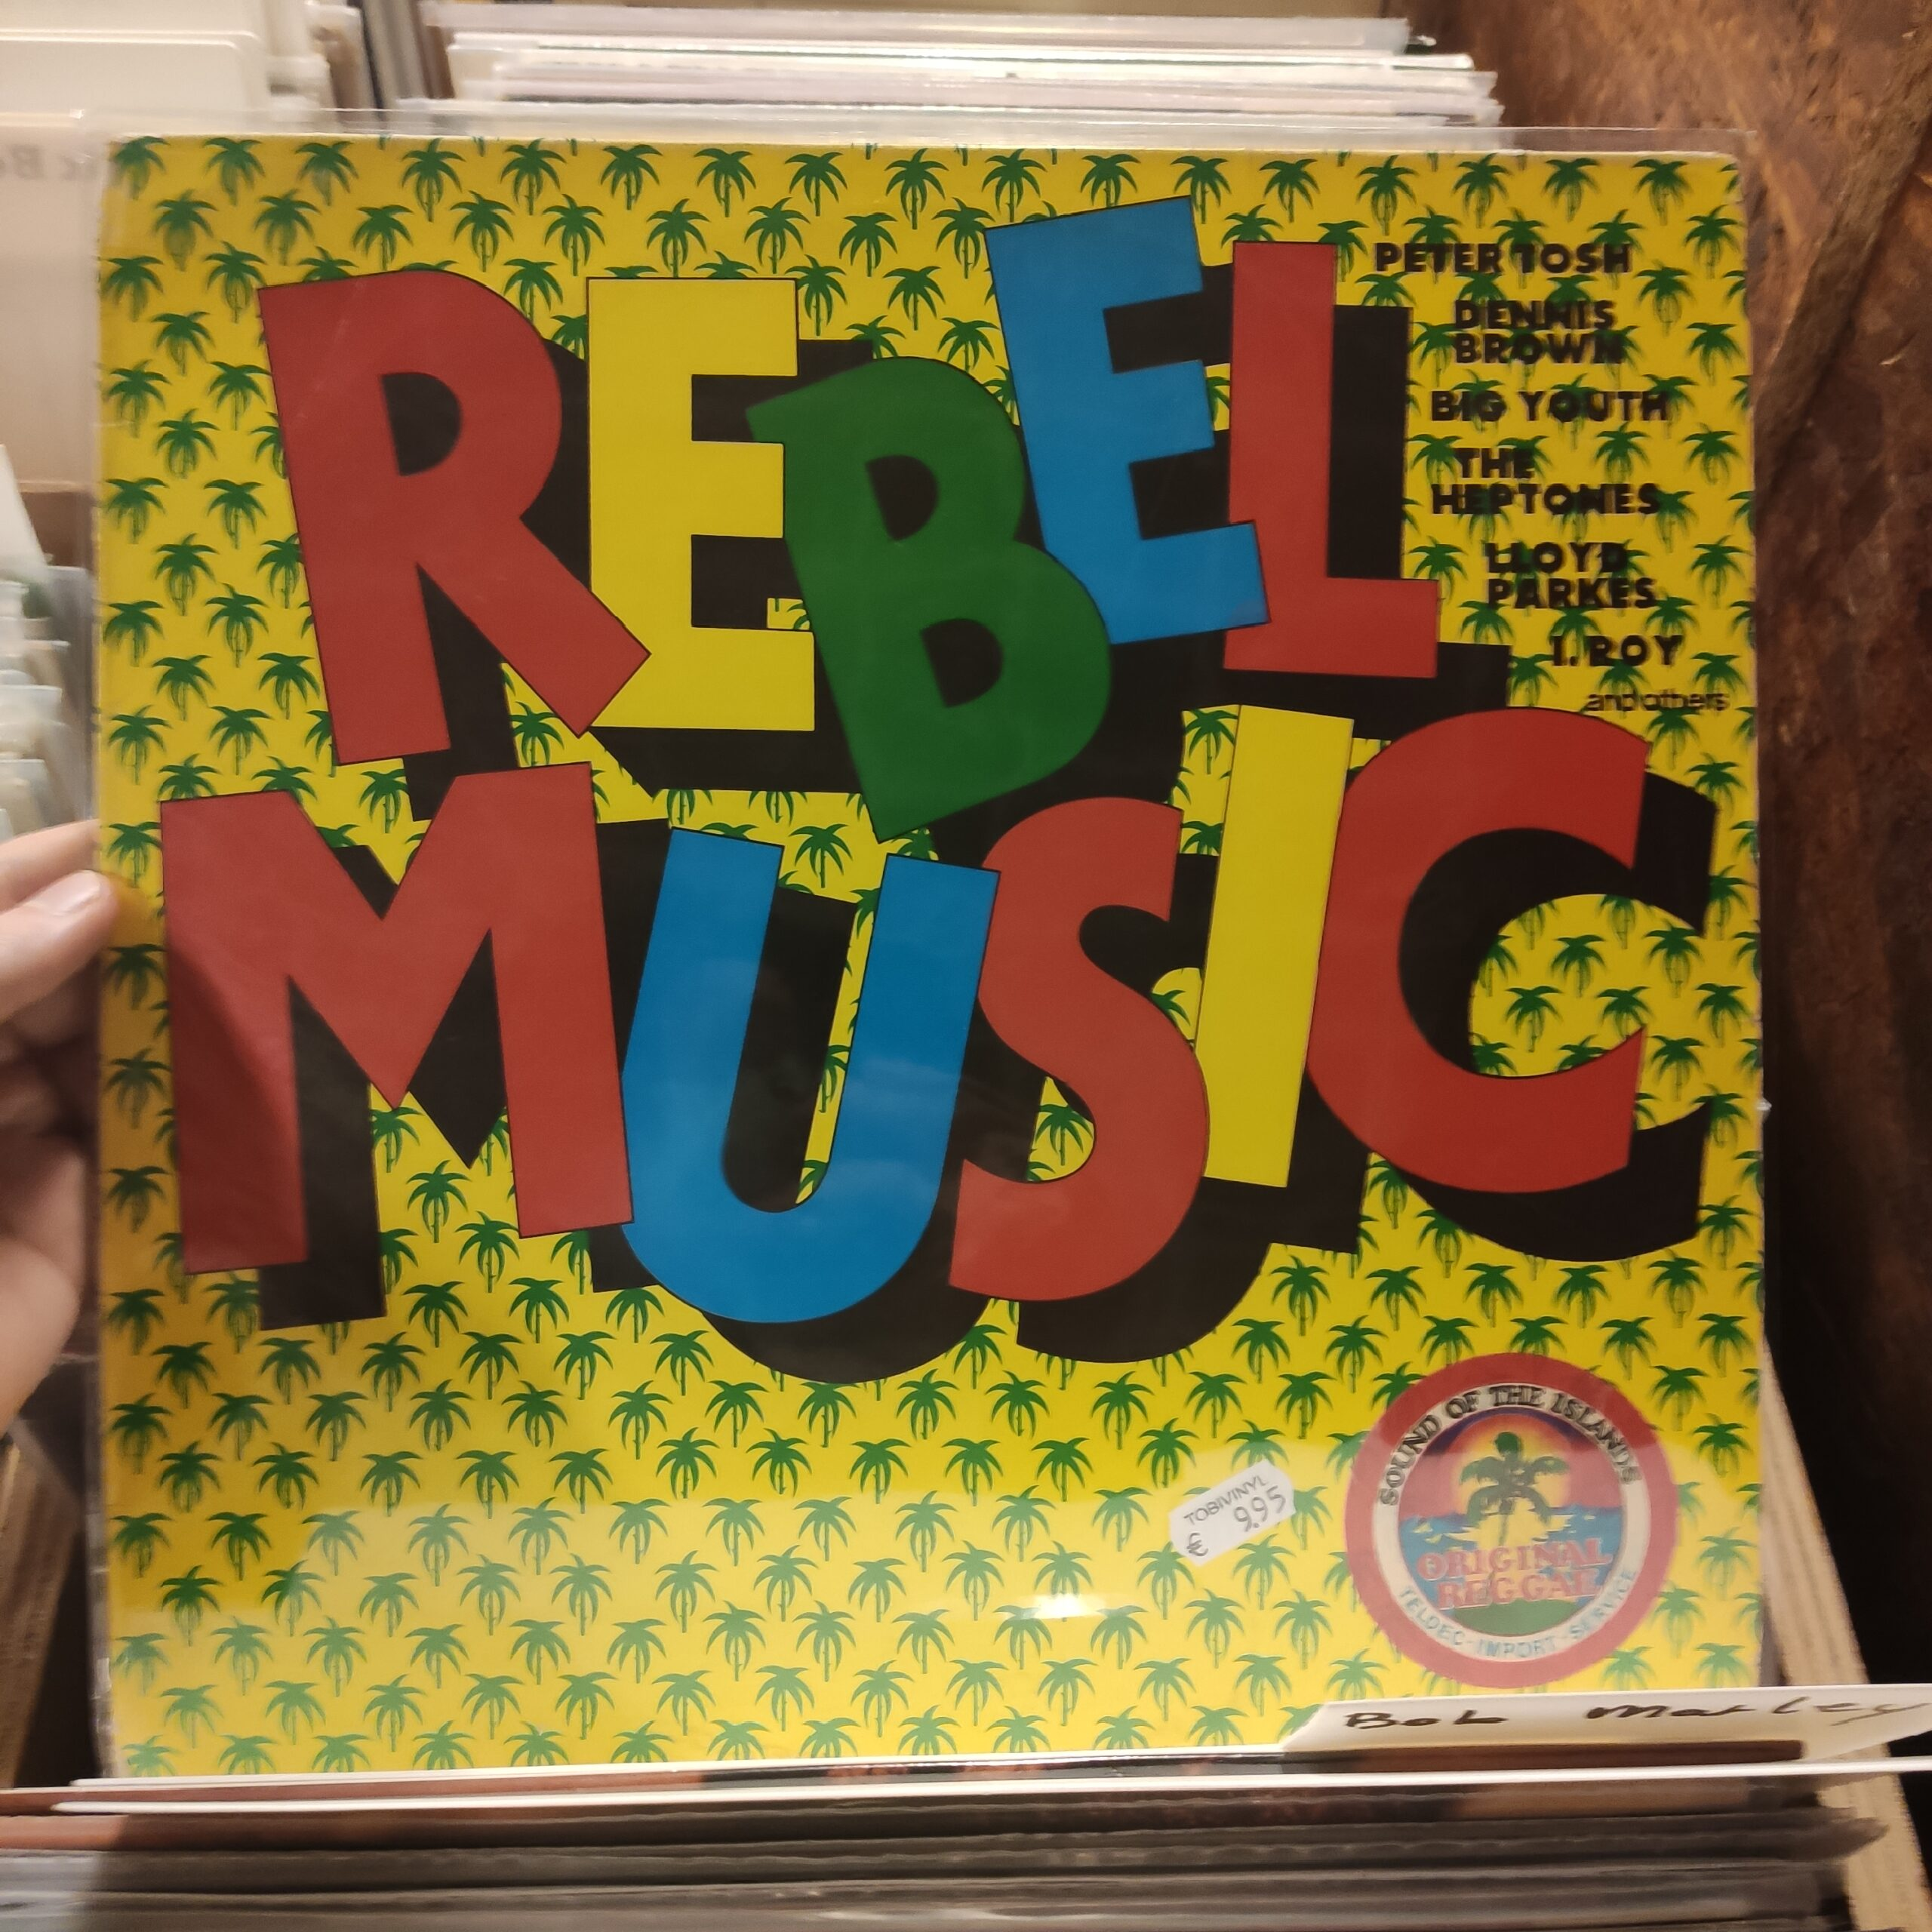 Product image rebel music – tweede hands lp (reggae)